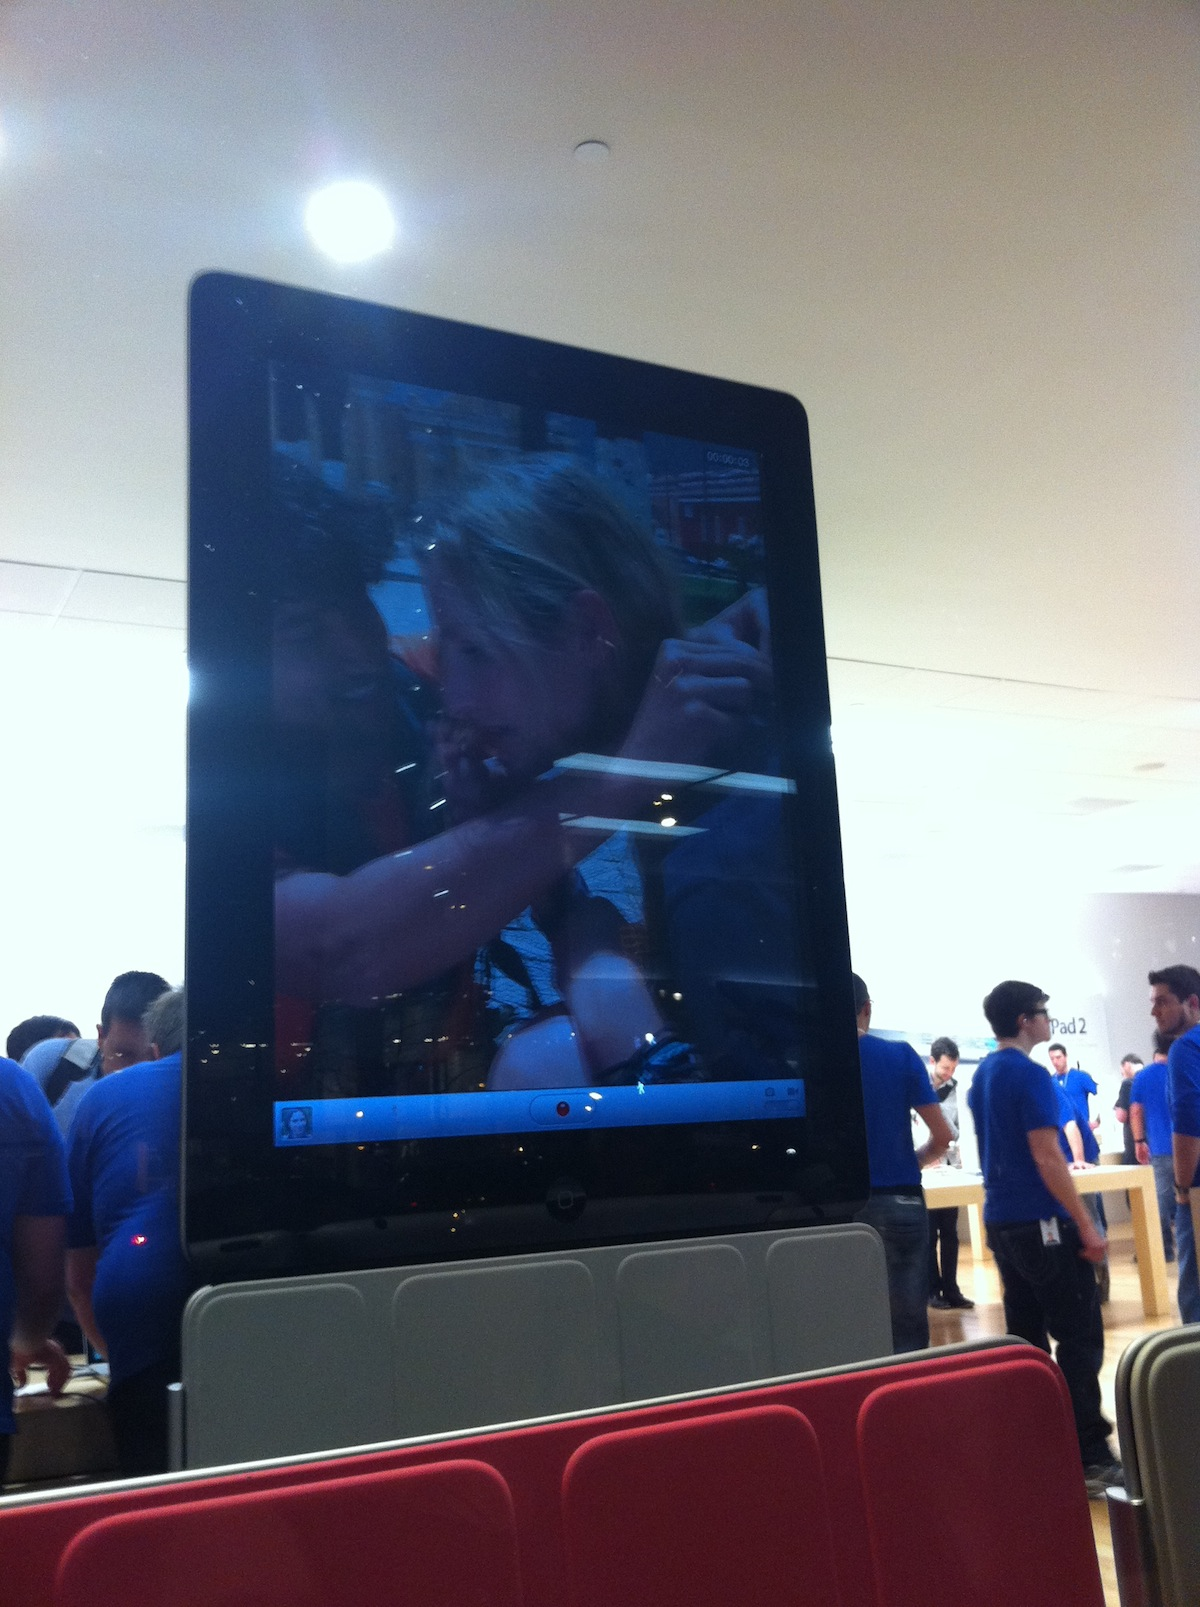 The iPad 2 on display in the store, with plenty of blue-shirts in the background. Photo by Megan Westerby.